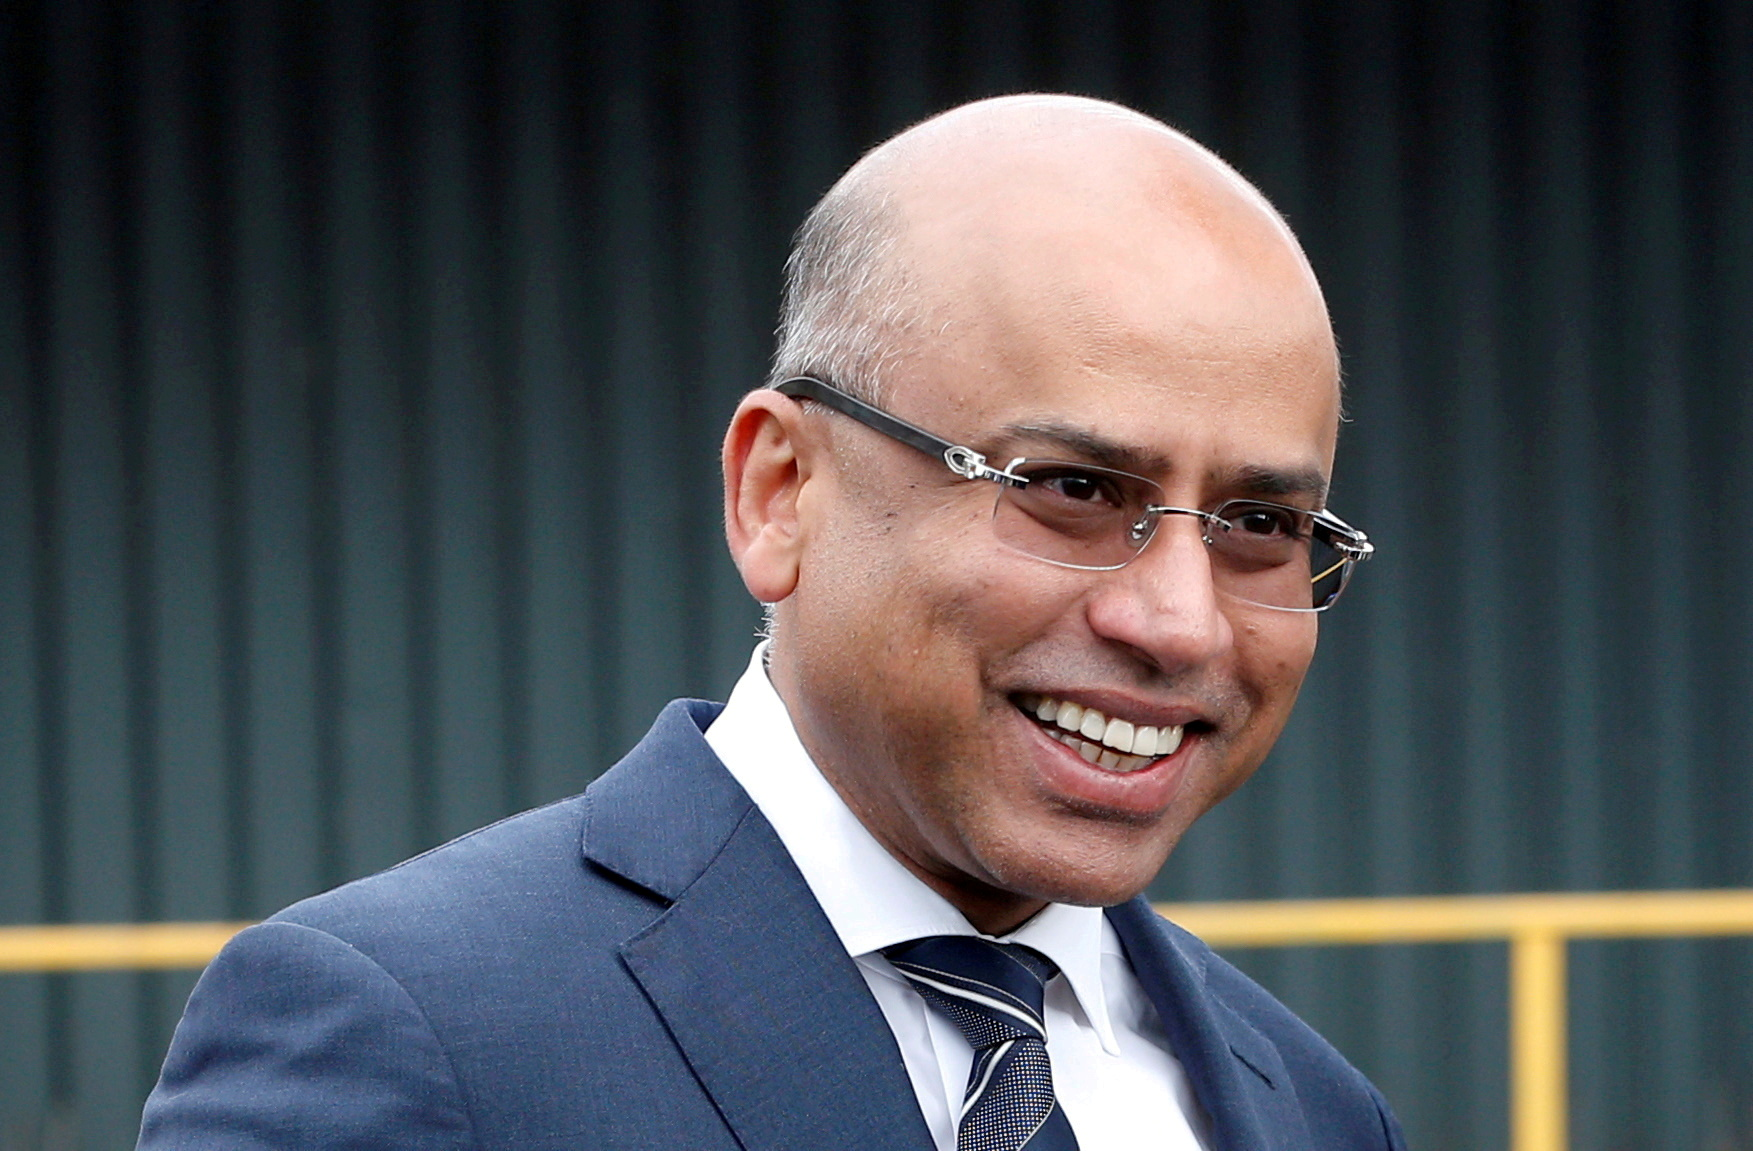 Liberty Steel's Sanjeev Gupta smiles outside the company's Liberty Steel processing mill in Dalzell, Scotland, Britain April 8, 2016. REUTERS/Russell Cheyne